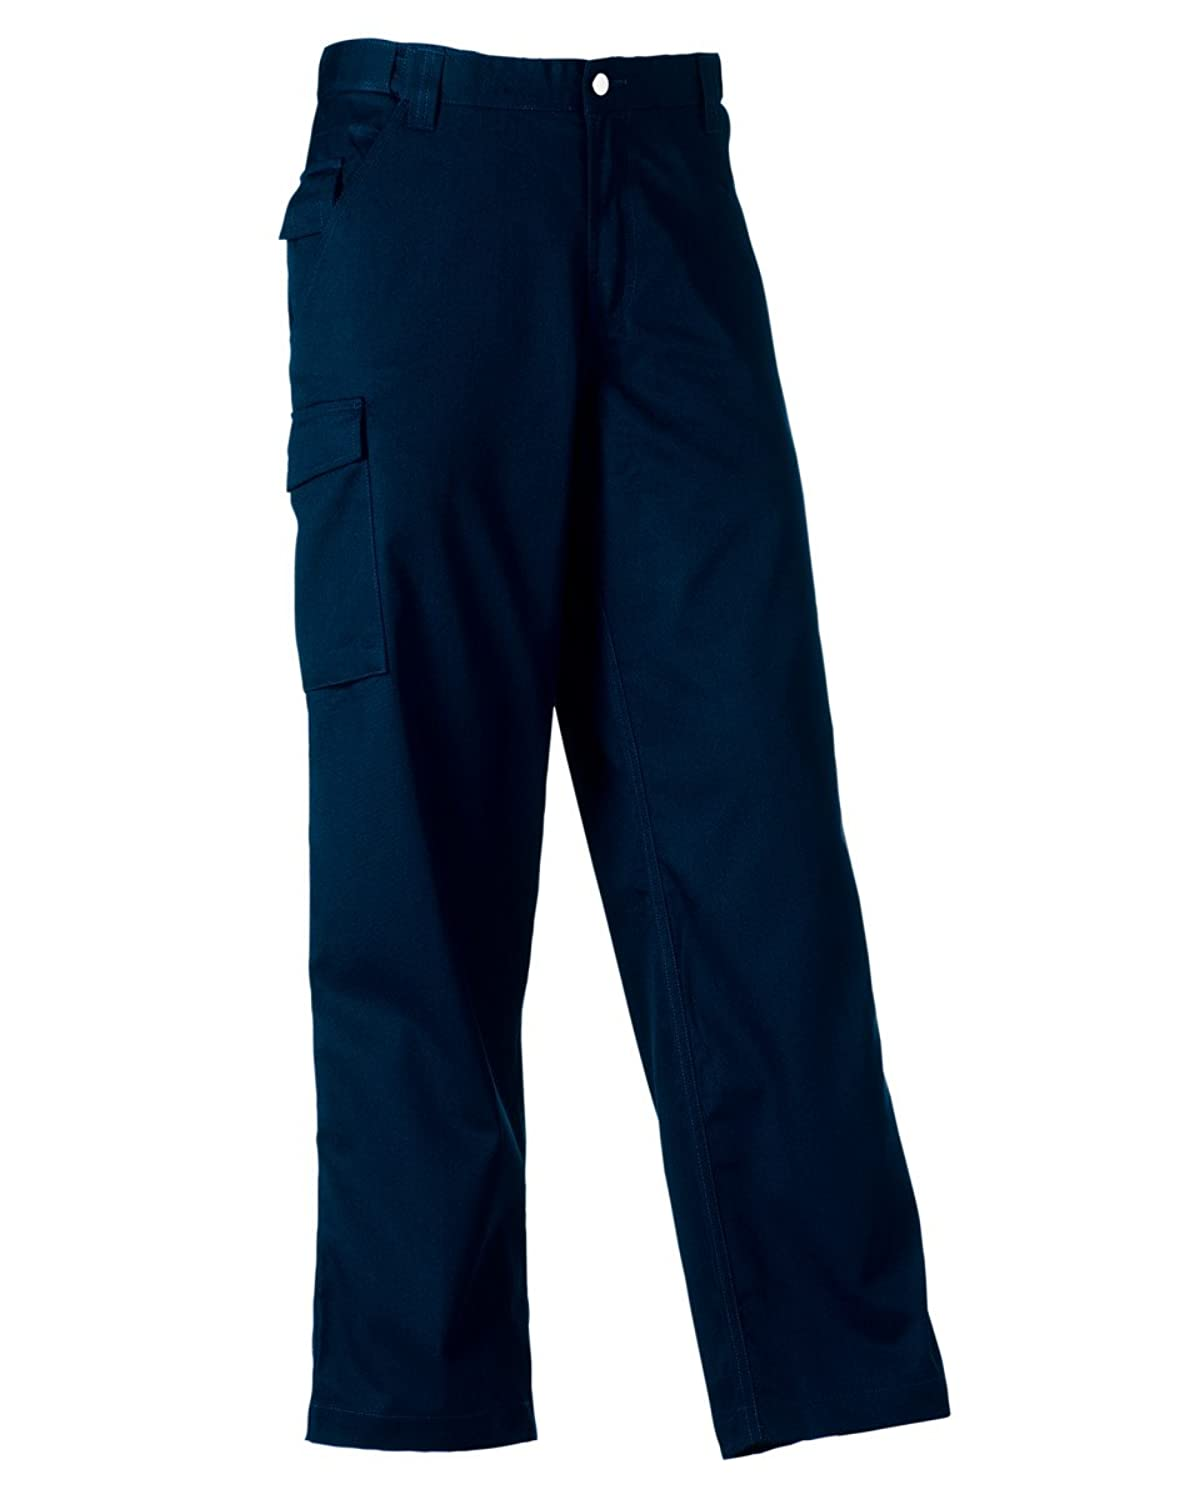 Russell Polycotton Twill Trousers (Reg) Colour=French Navy Size=44""